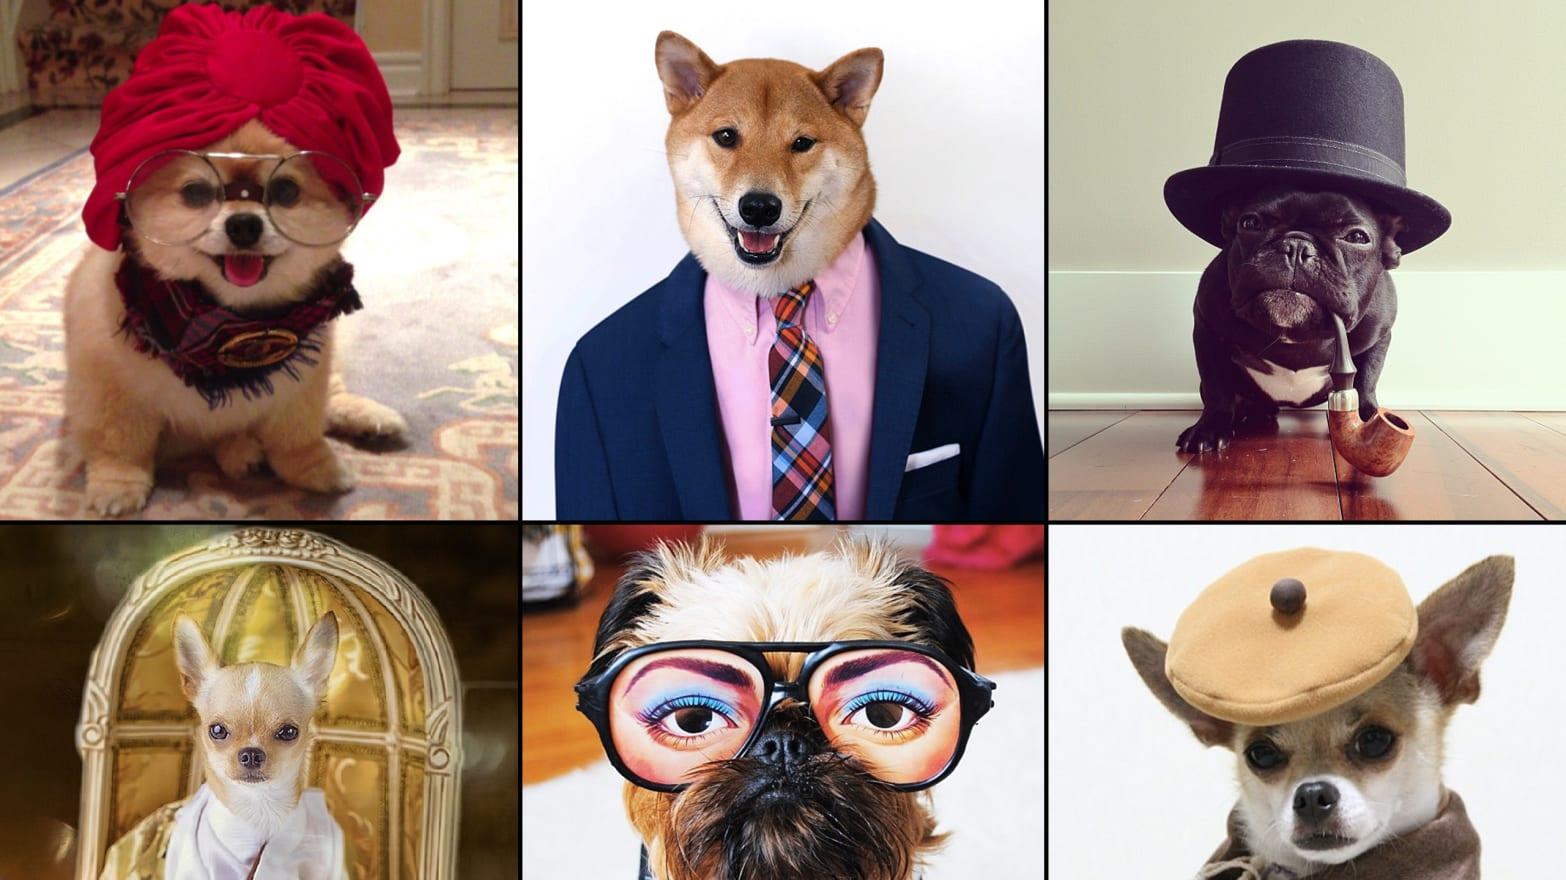 The 11 Best-Dressed Dogs of Instagram (PHOTOS)